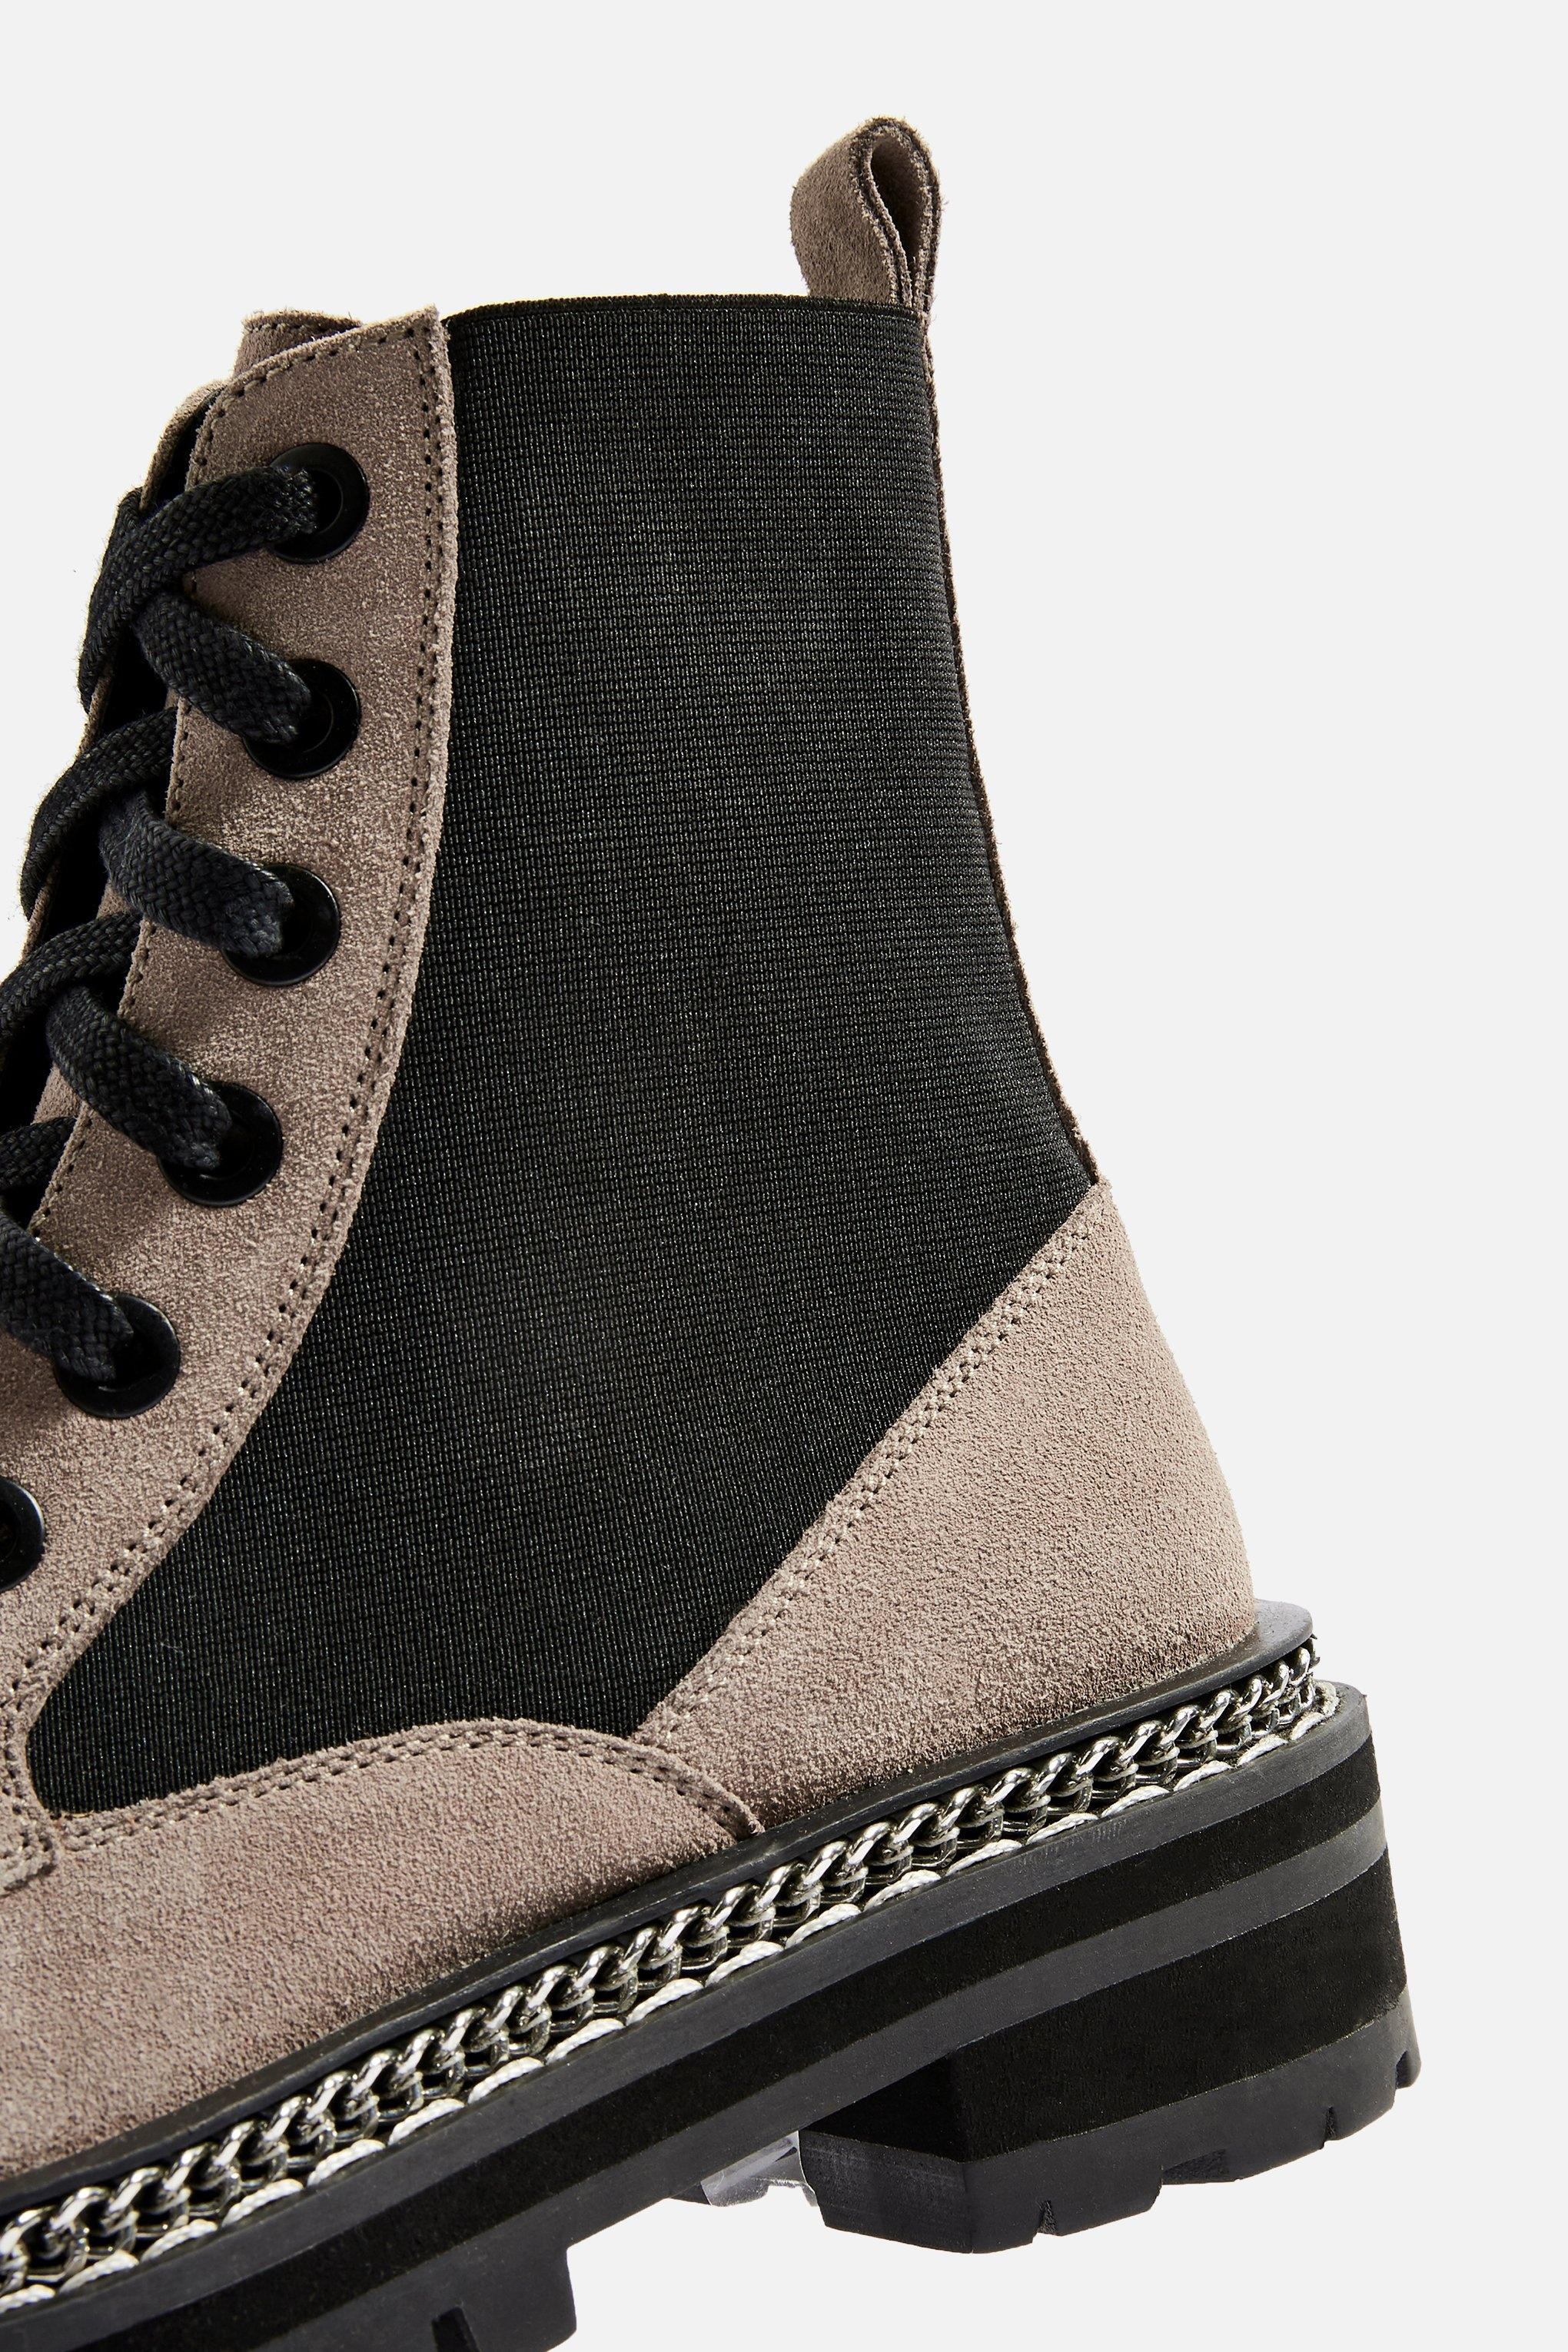 0d201367880d Lyst - TOPSHOP Ashton Low Ankle Boots in Gray